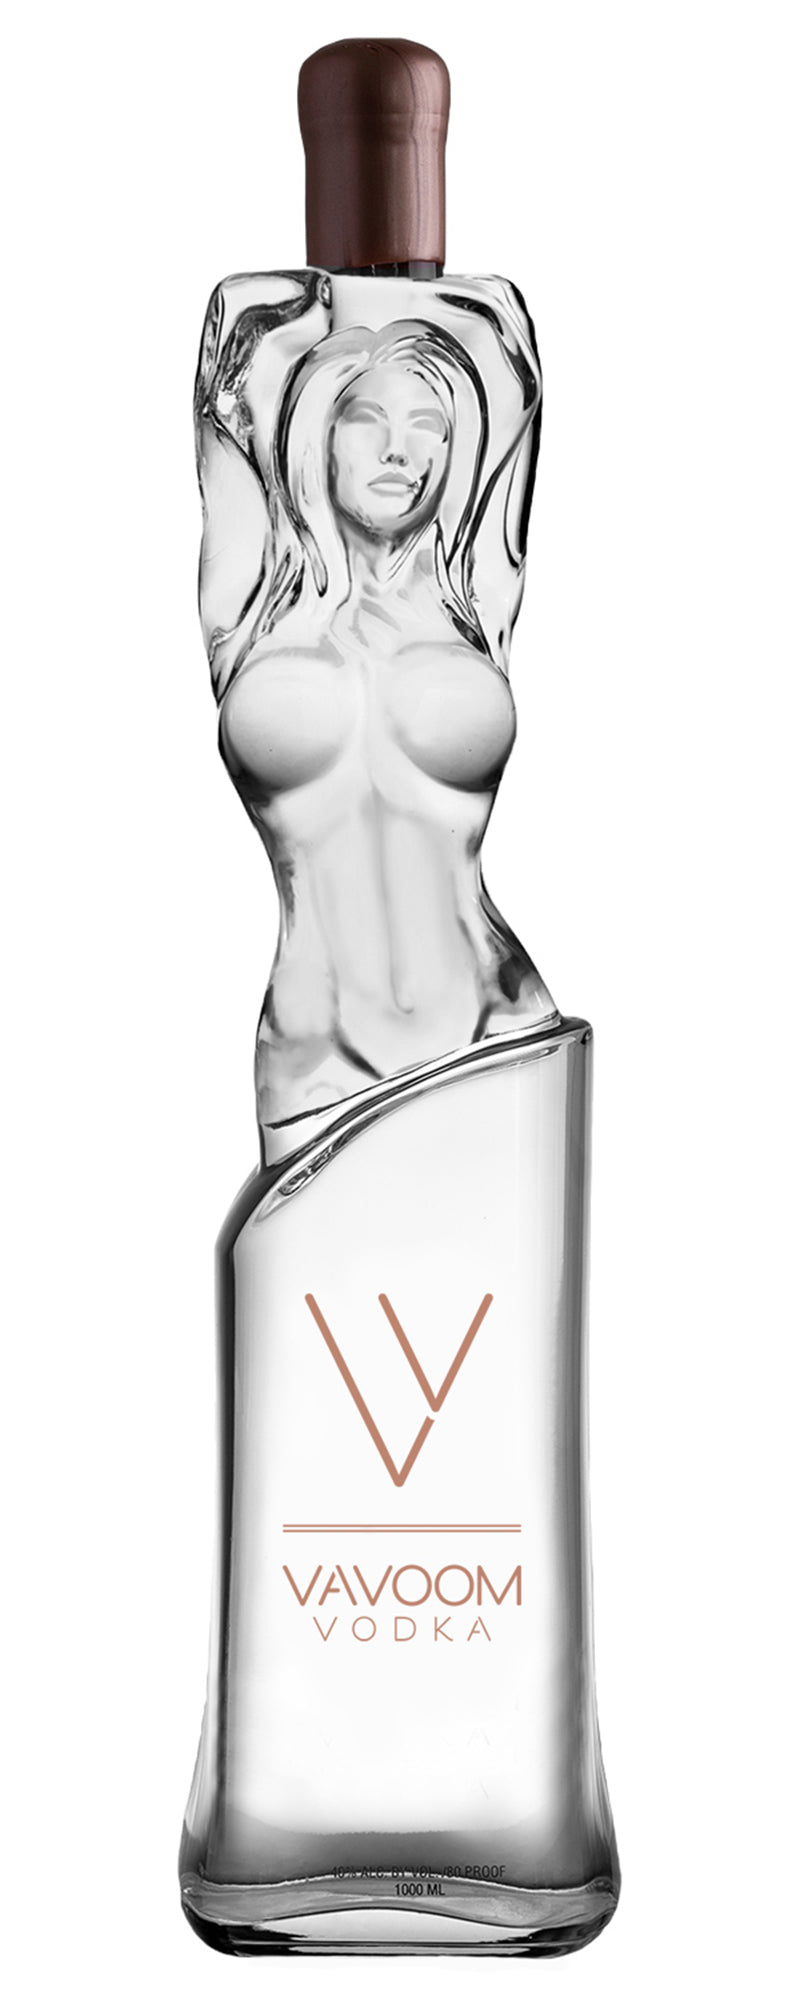 The Best Vodka Brands